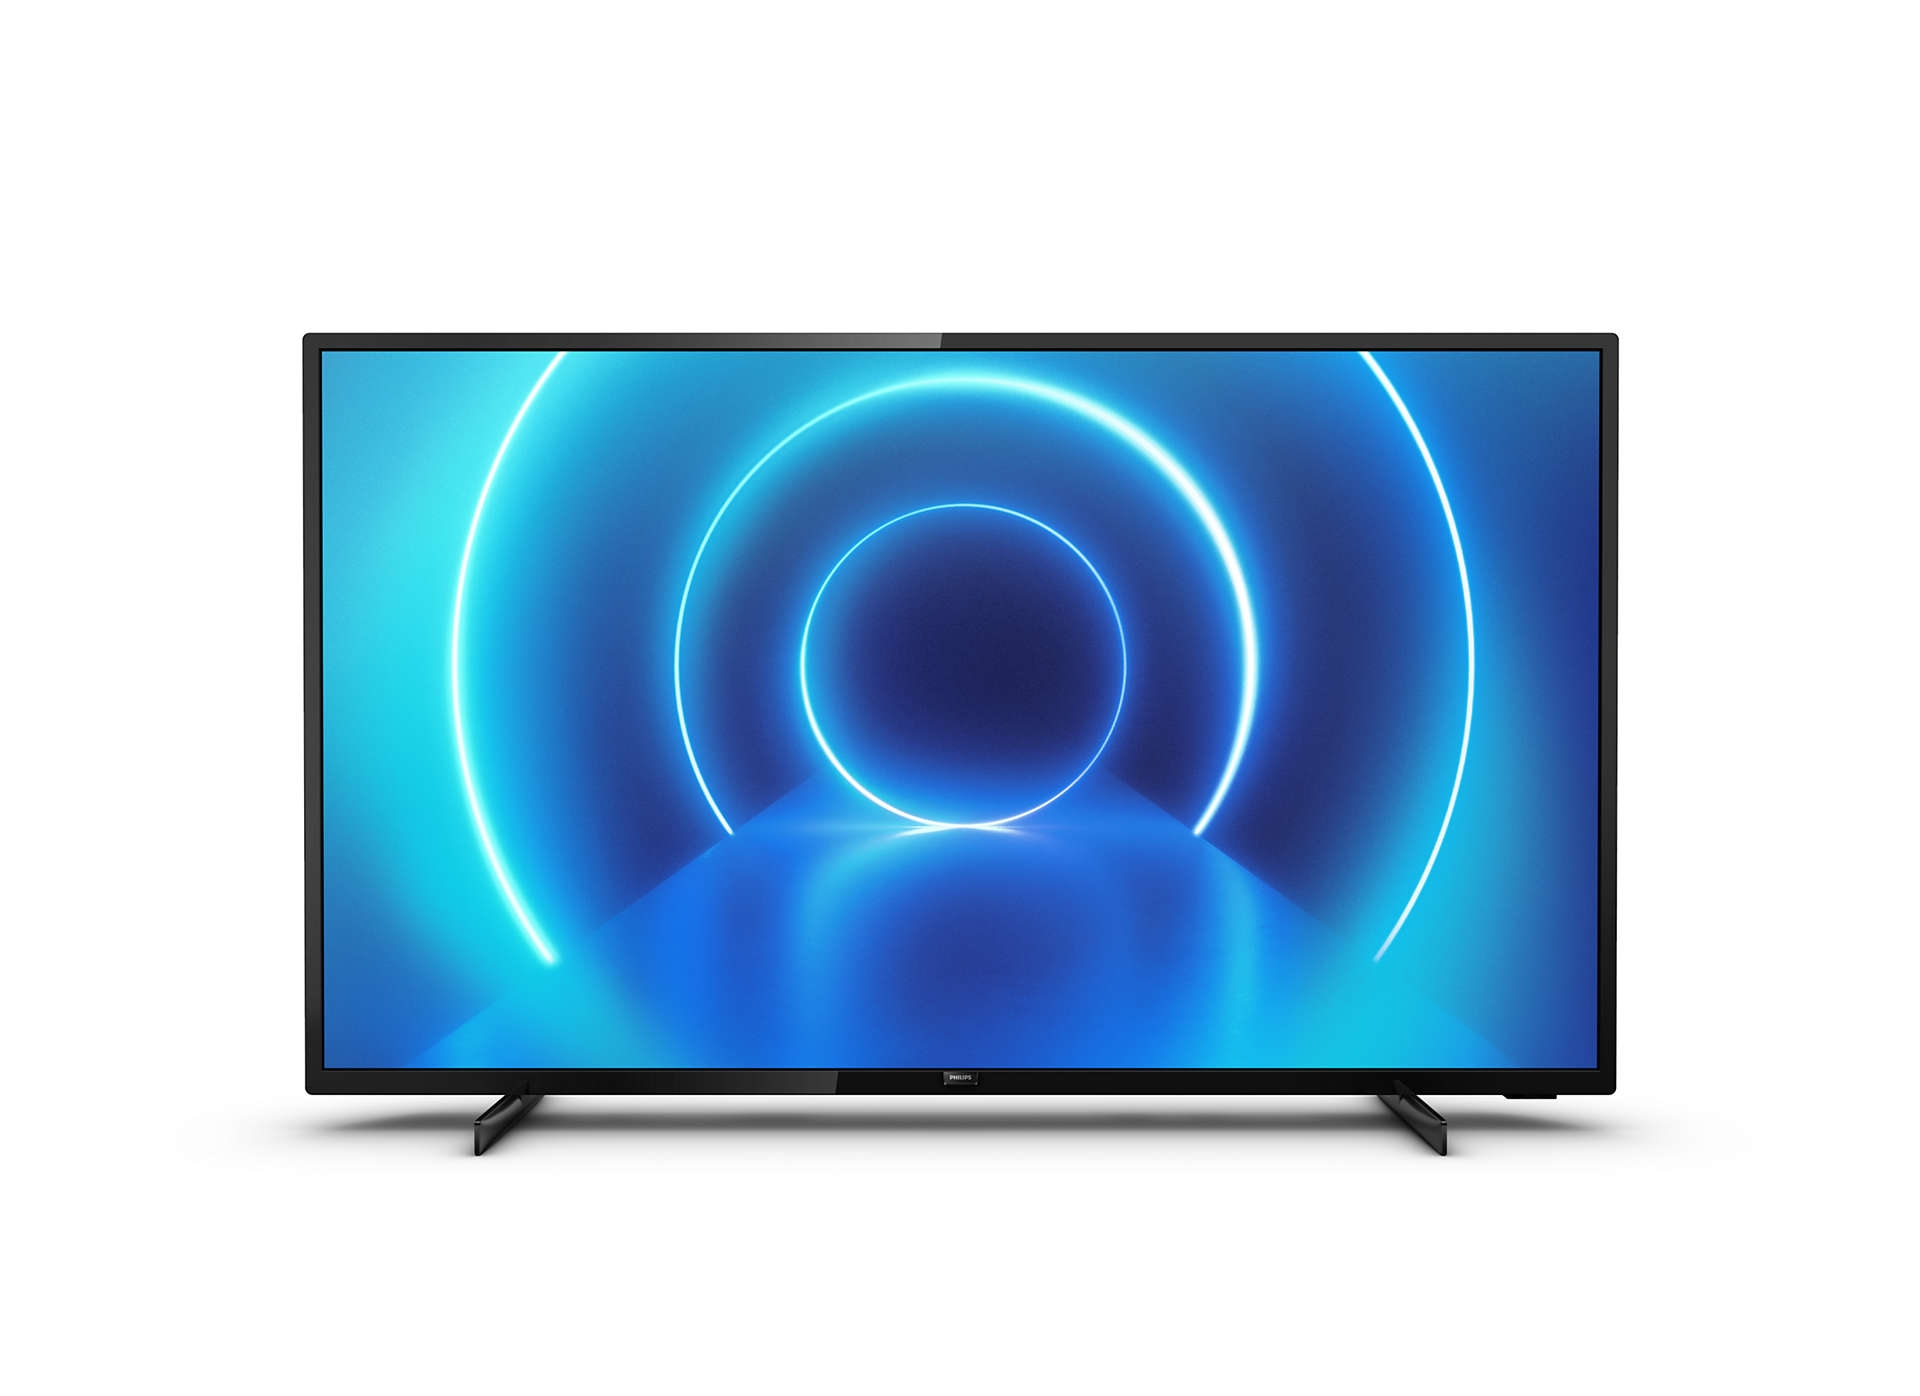 ЖК Телевизор Ultra HD Philips 50PUS7505 50 дюймов 50PUS7505/60 фото